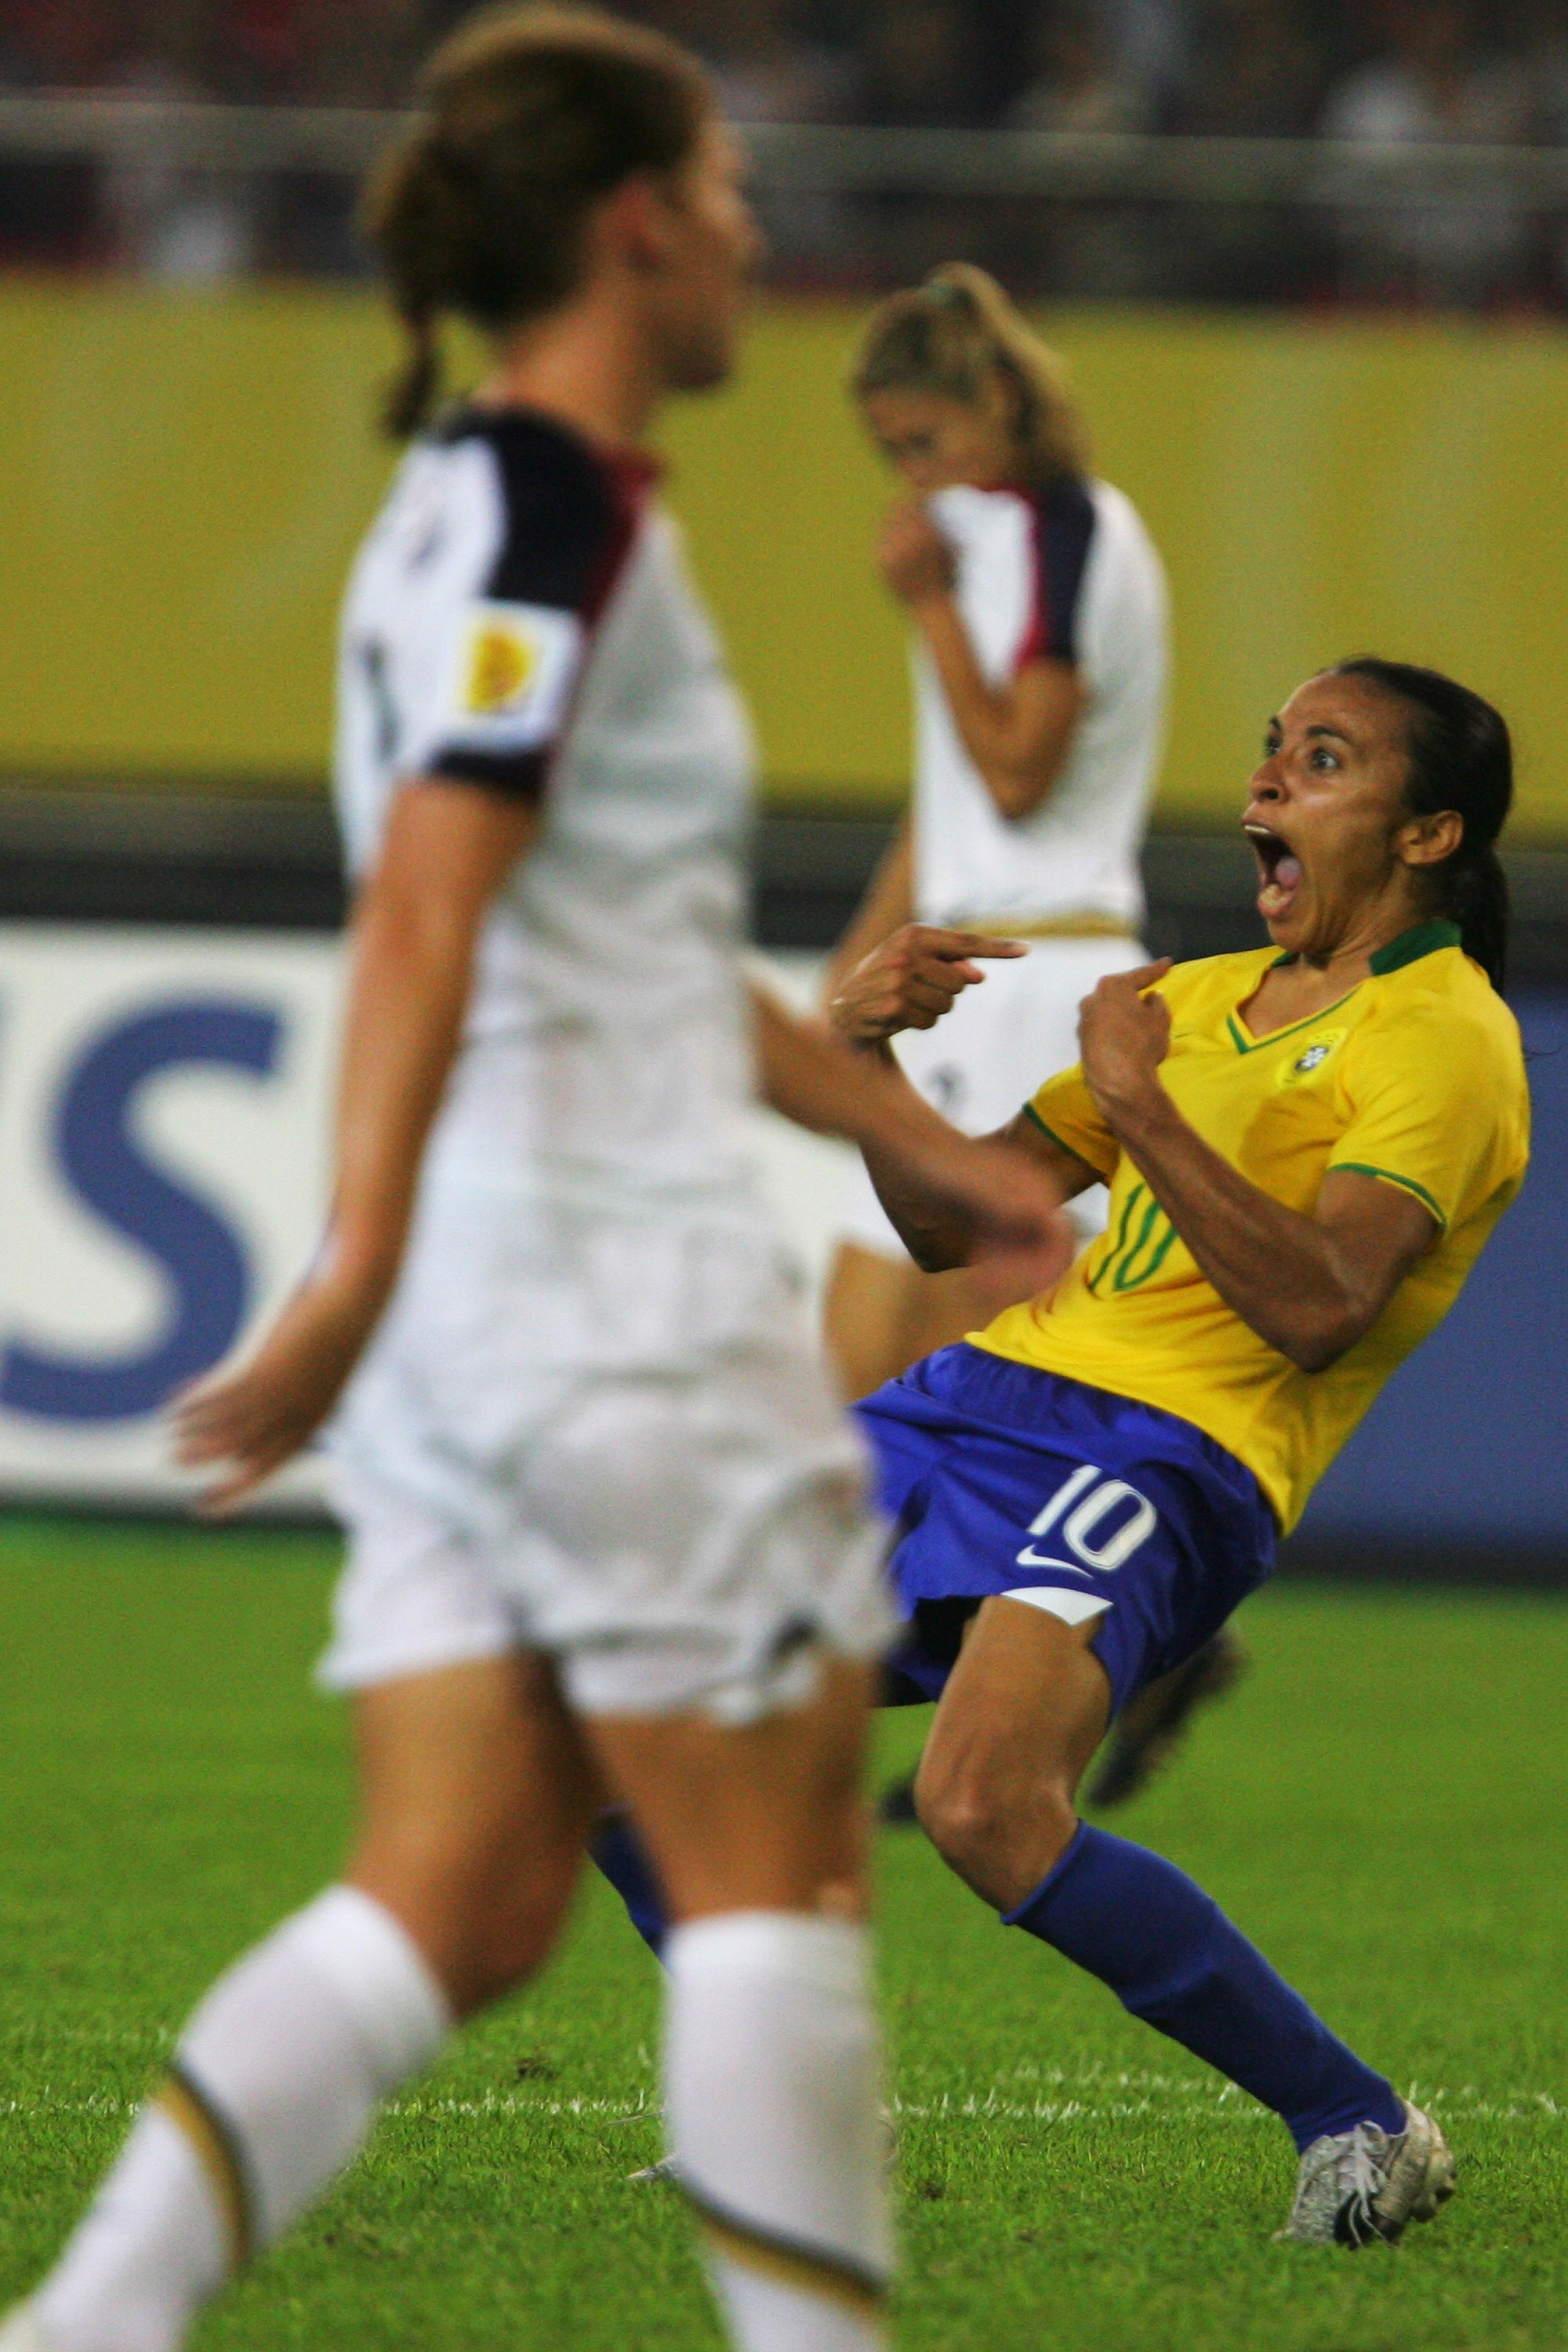 HANGZHOU, ZHEJIANG - SEPTEMBER 27:  Marta(R 10#)  of Brazil celebrates the goal  during the Womens World Cup 2007 Semi Final match between USA and Brazil at Hangzhou Dragon Stadium on September 27, 2007 in Hangzhou, Zhejiang province of China.  (Photo by